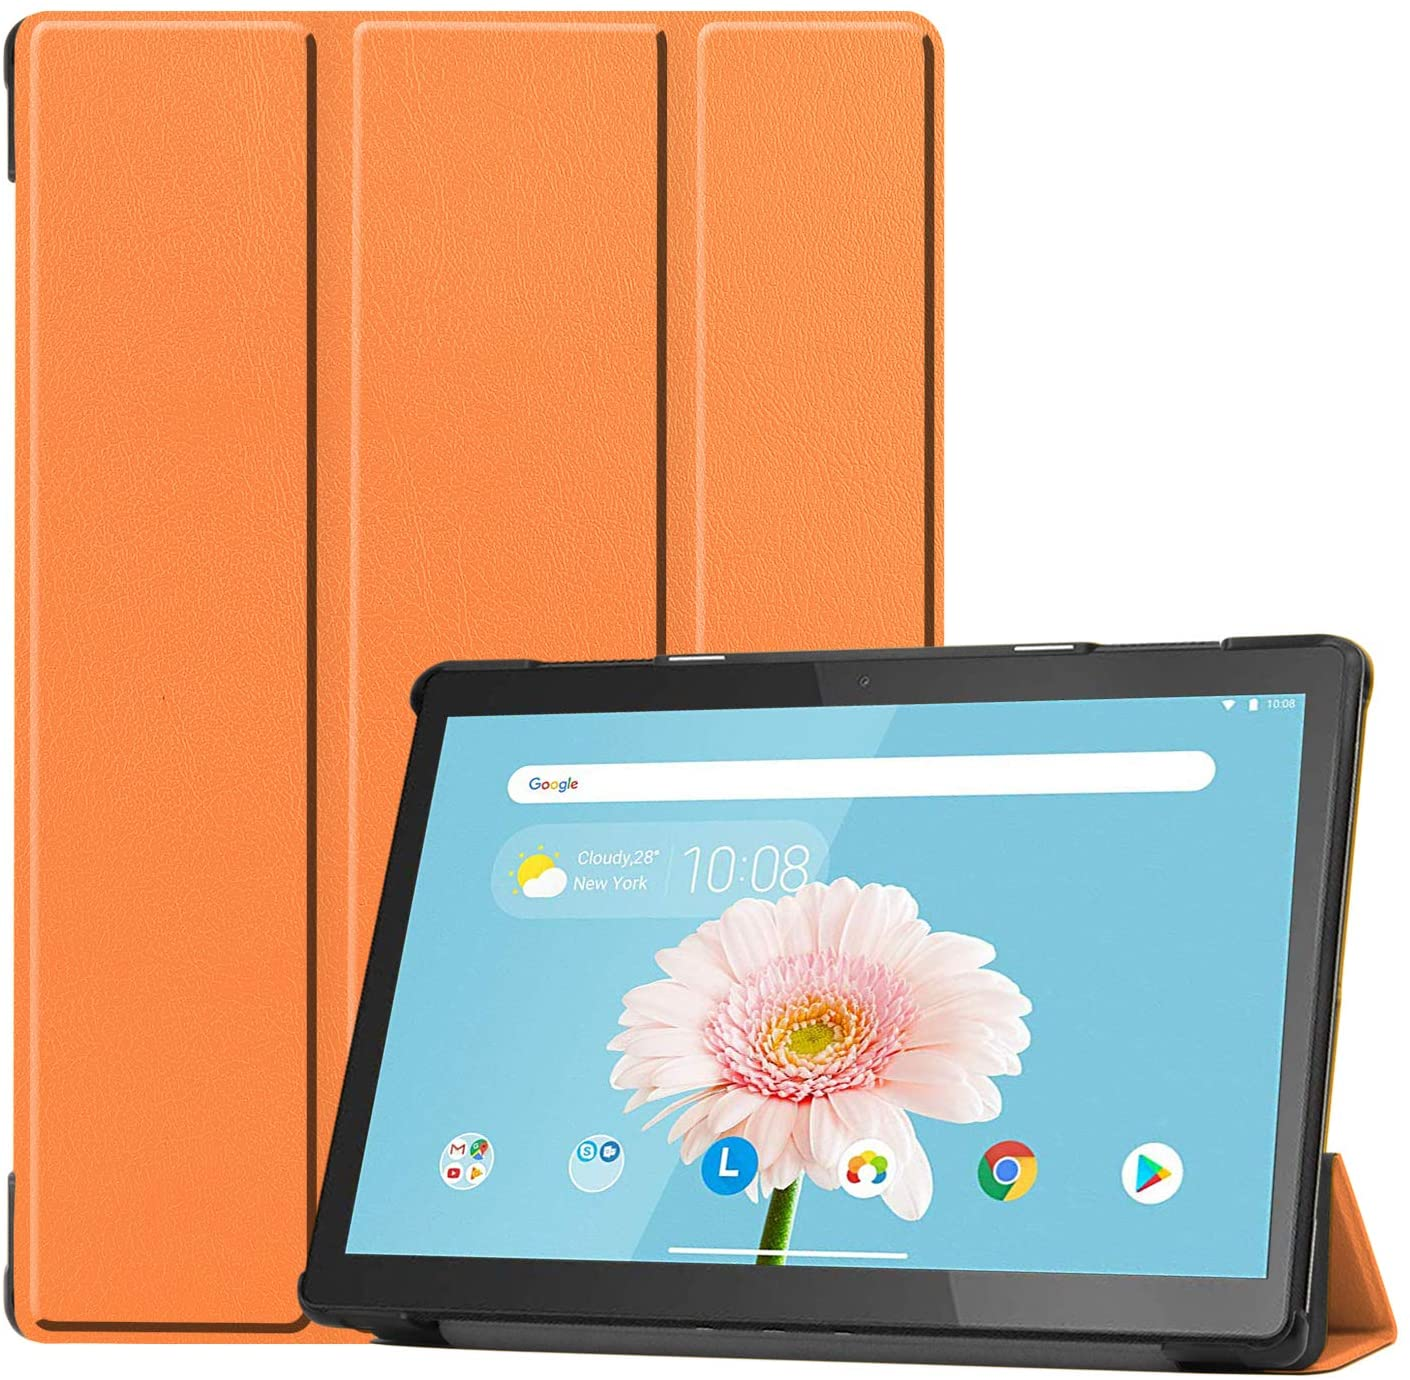 Smart Case for Lenovo Tab M10 HD TB-X505F, Ratesell Lightweight Smart Trifold Stand Microfiber Lining Case Cover for Lenovo Tab M10 HD TB-X505F TB-X505L / Lenovo Tab M10 10.1'' (TB-X605F) Orange